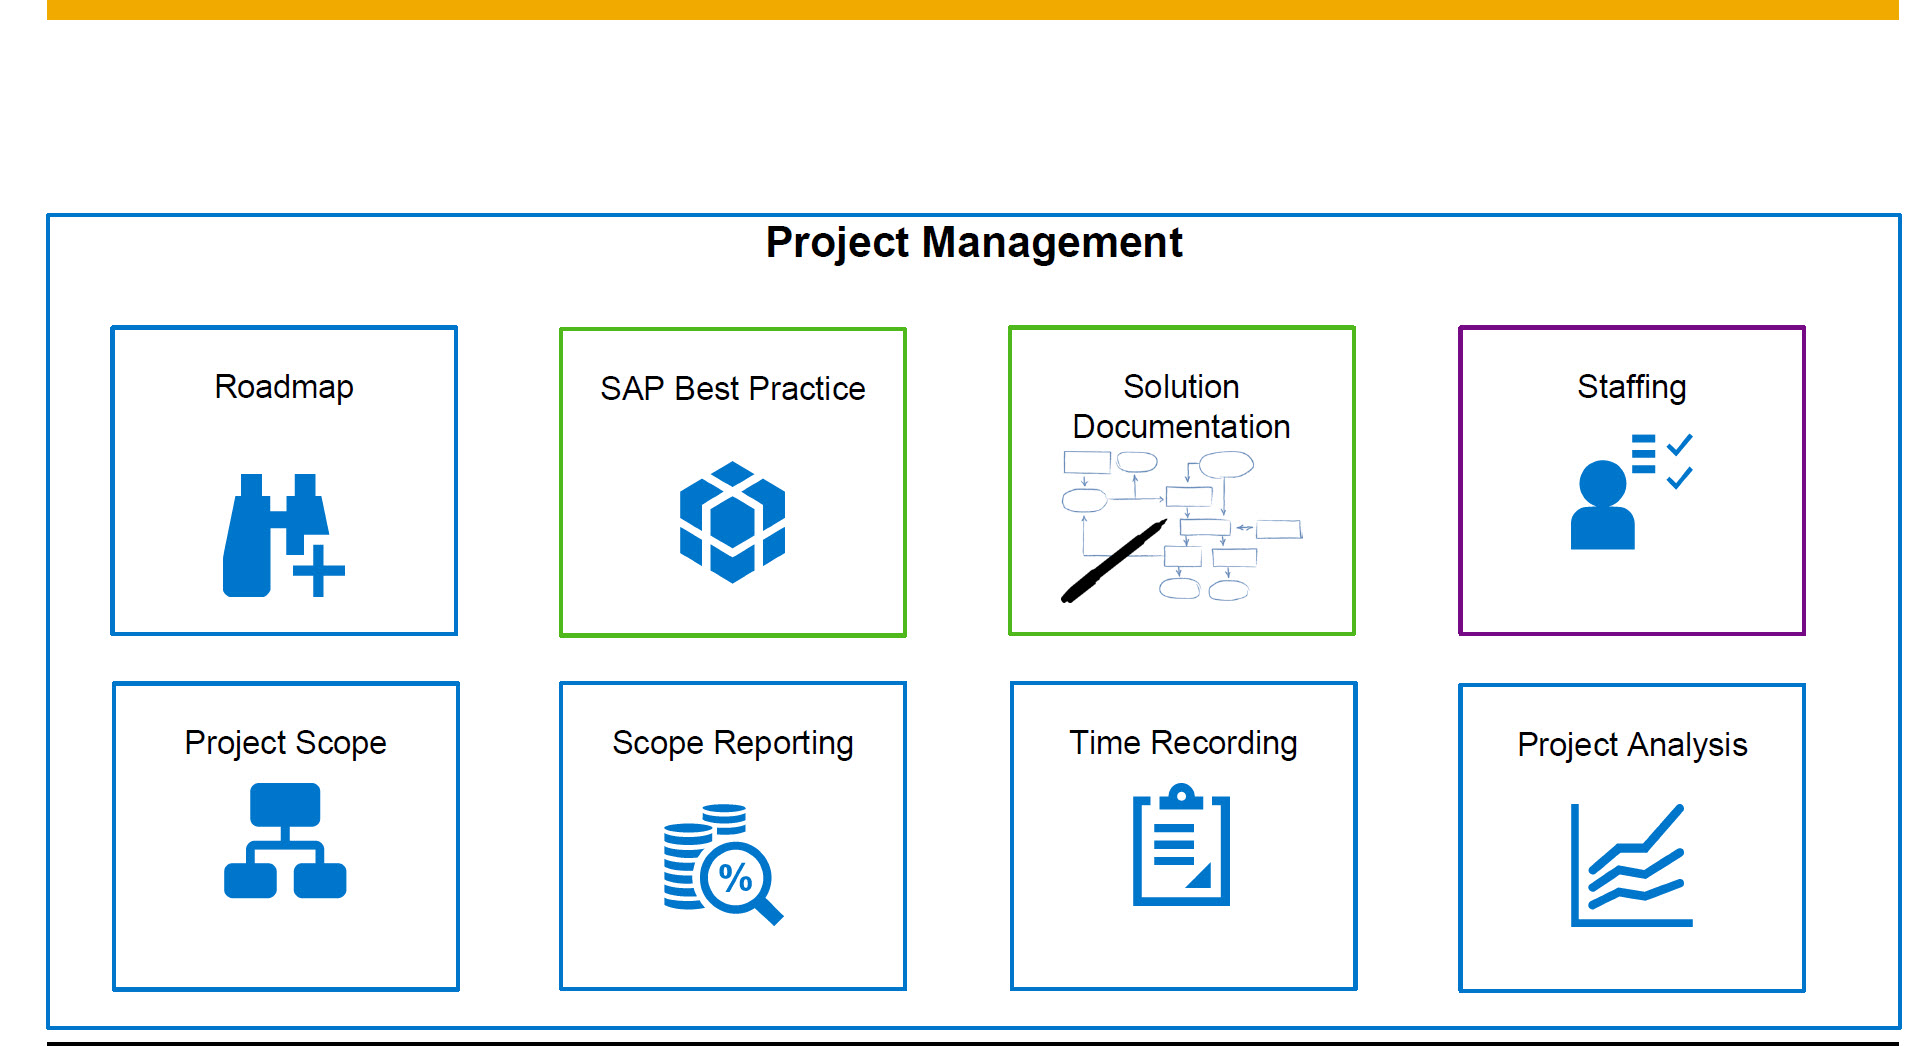 Project management in a nutshell for sap solution manager 72 detailed functionalityg xflitez Image collections